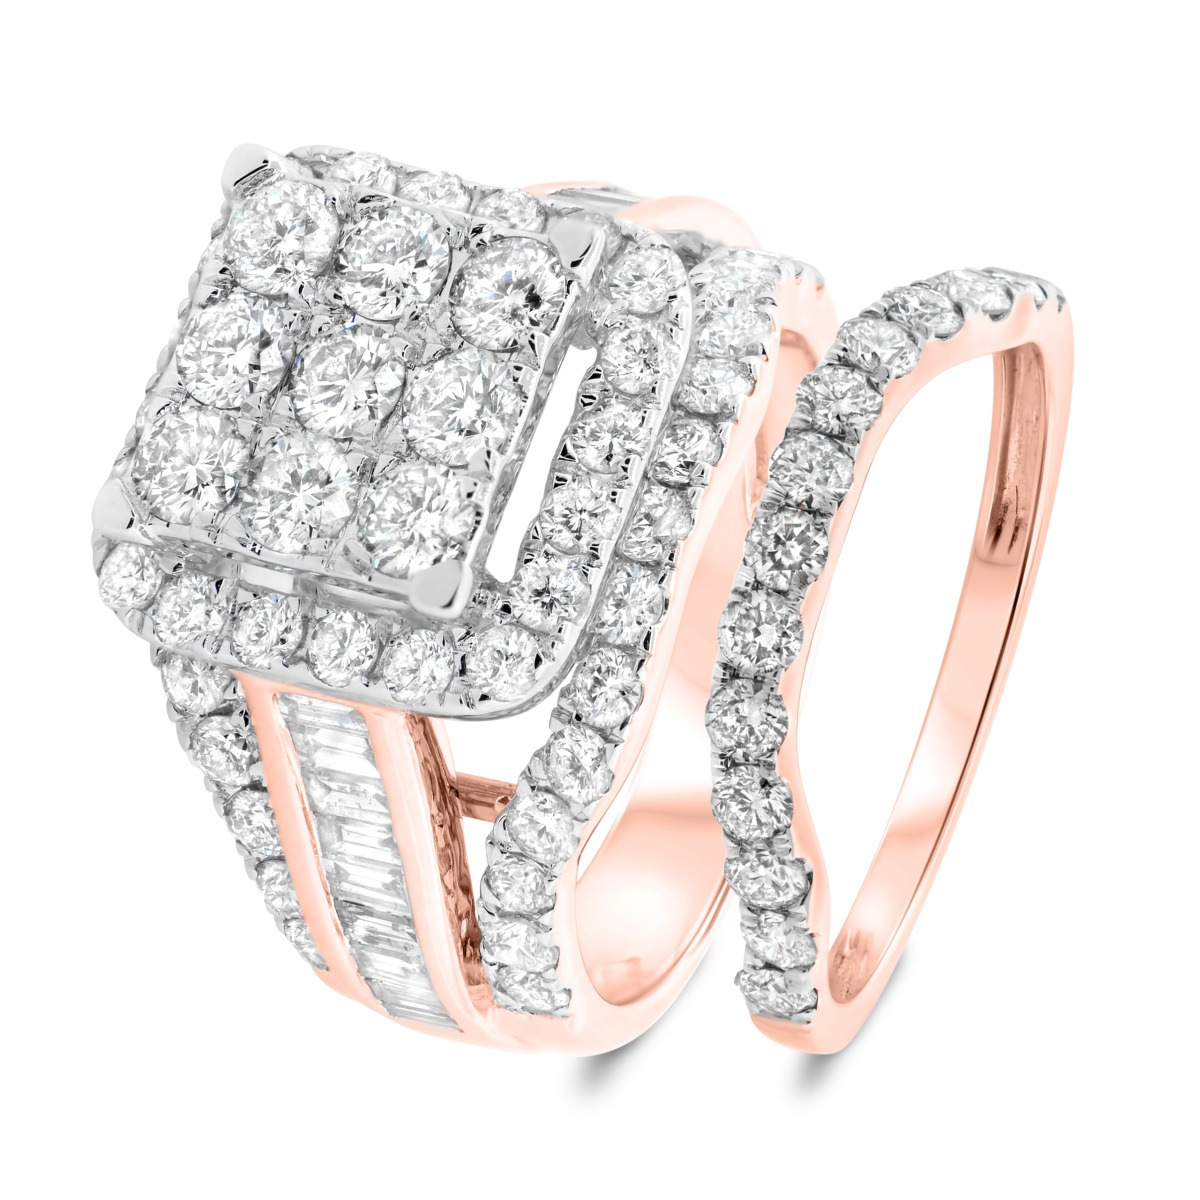 4 Carat T.W. Diamond Matching Bridal Ring Set 10K Rose Gold